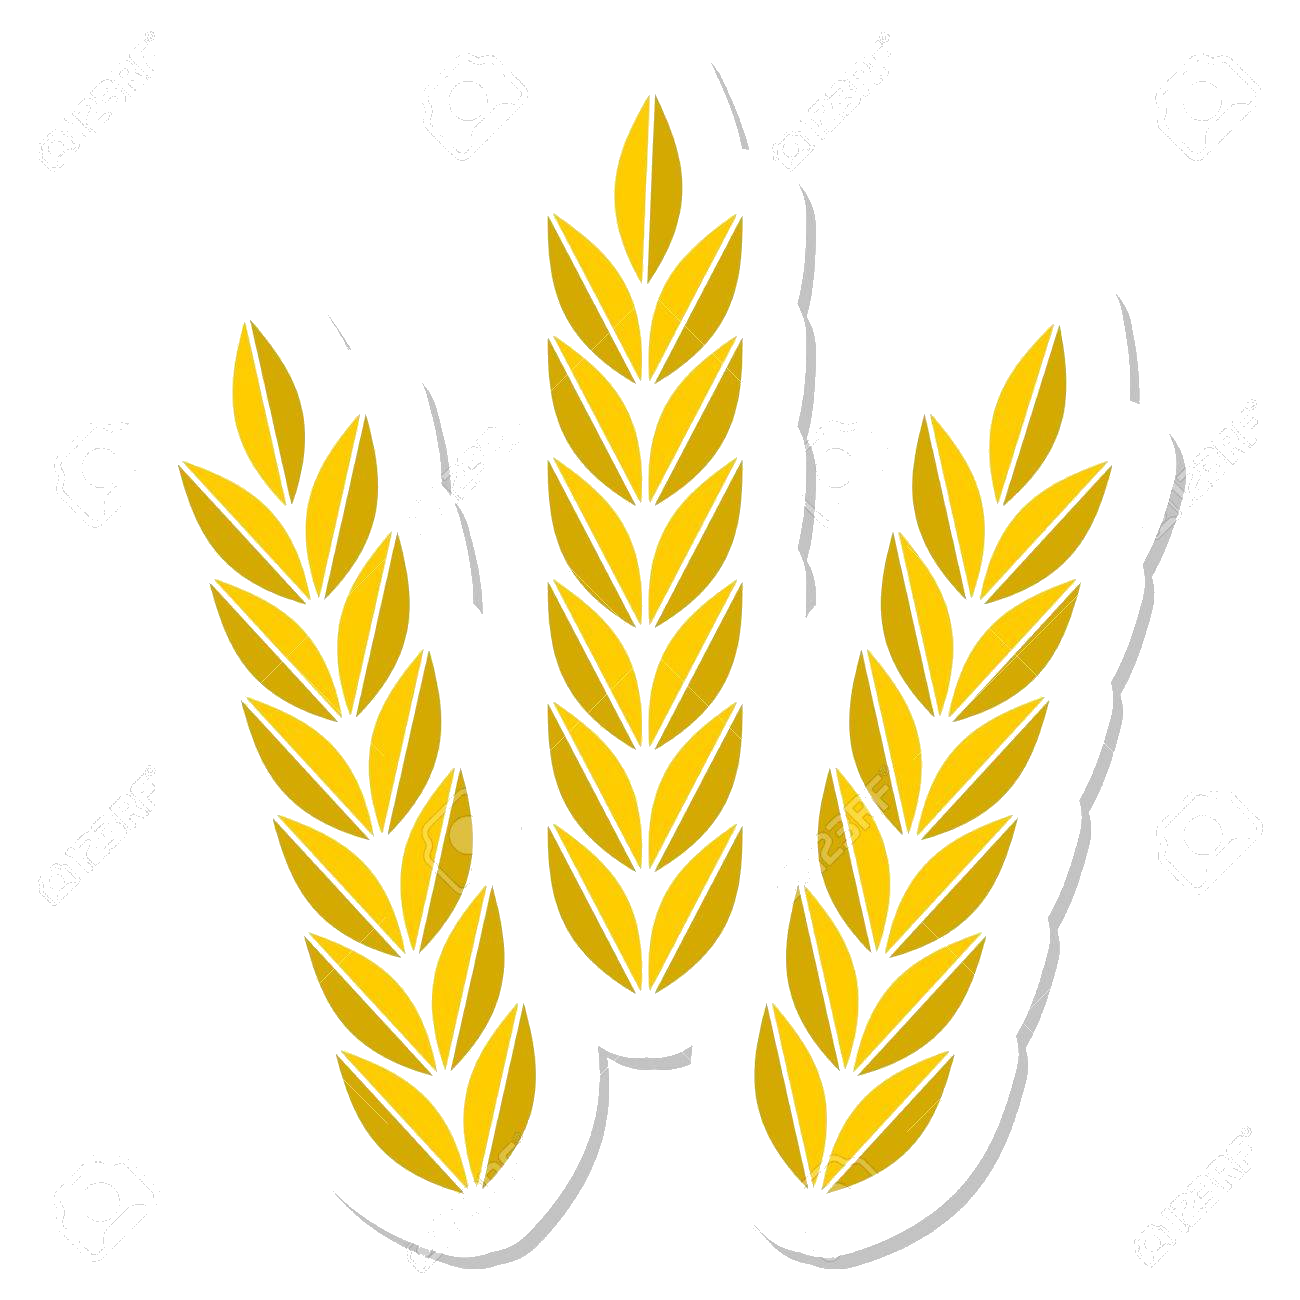 Wheat clipart agriculture. Transparent clip arts and